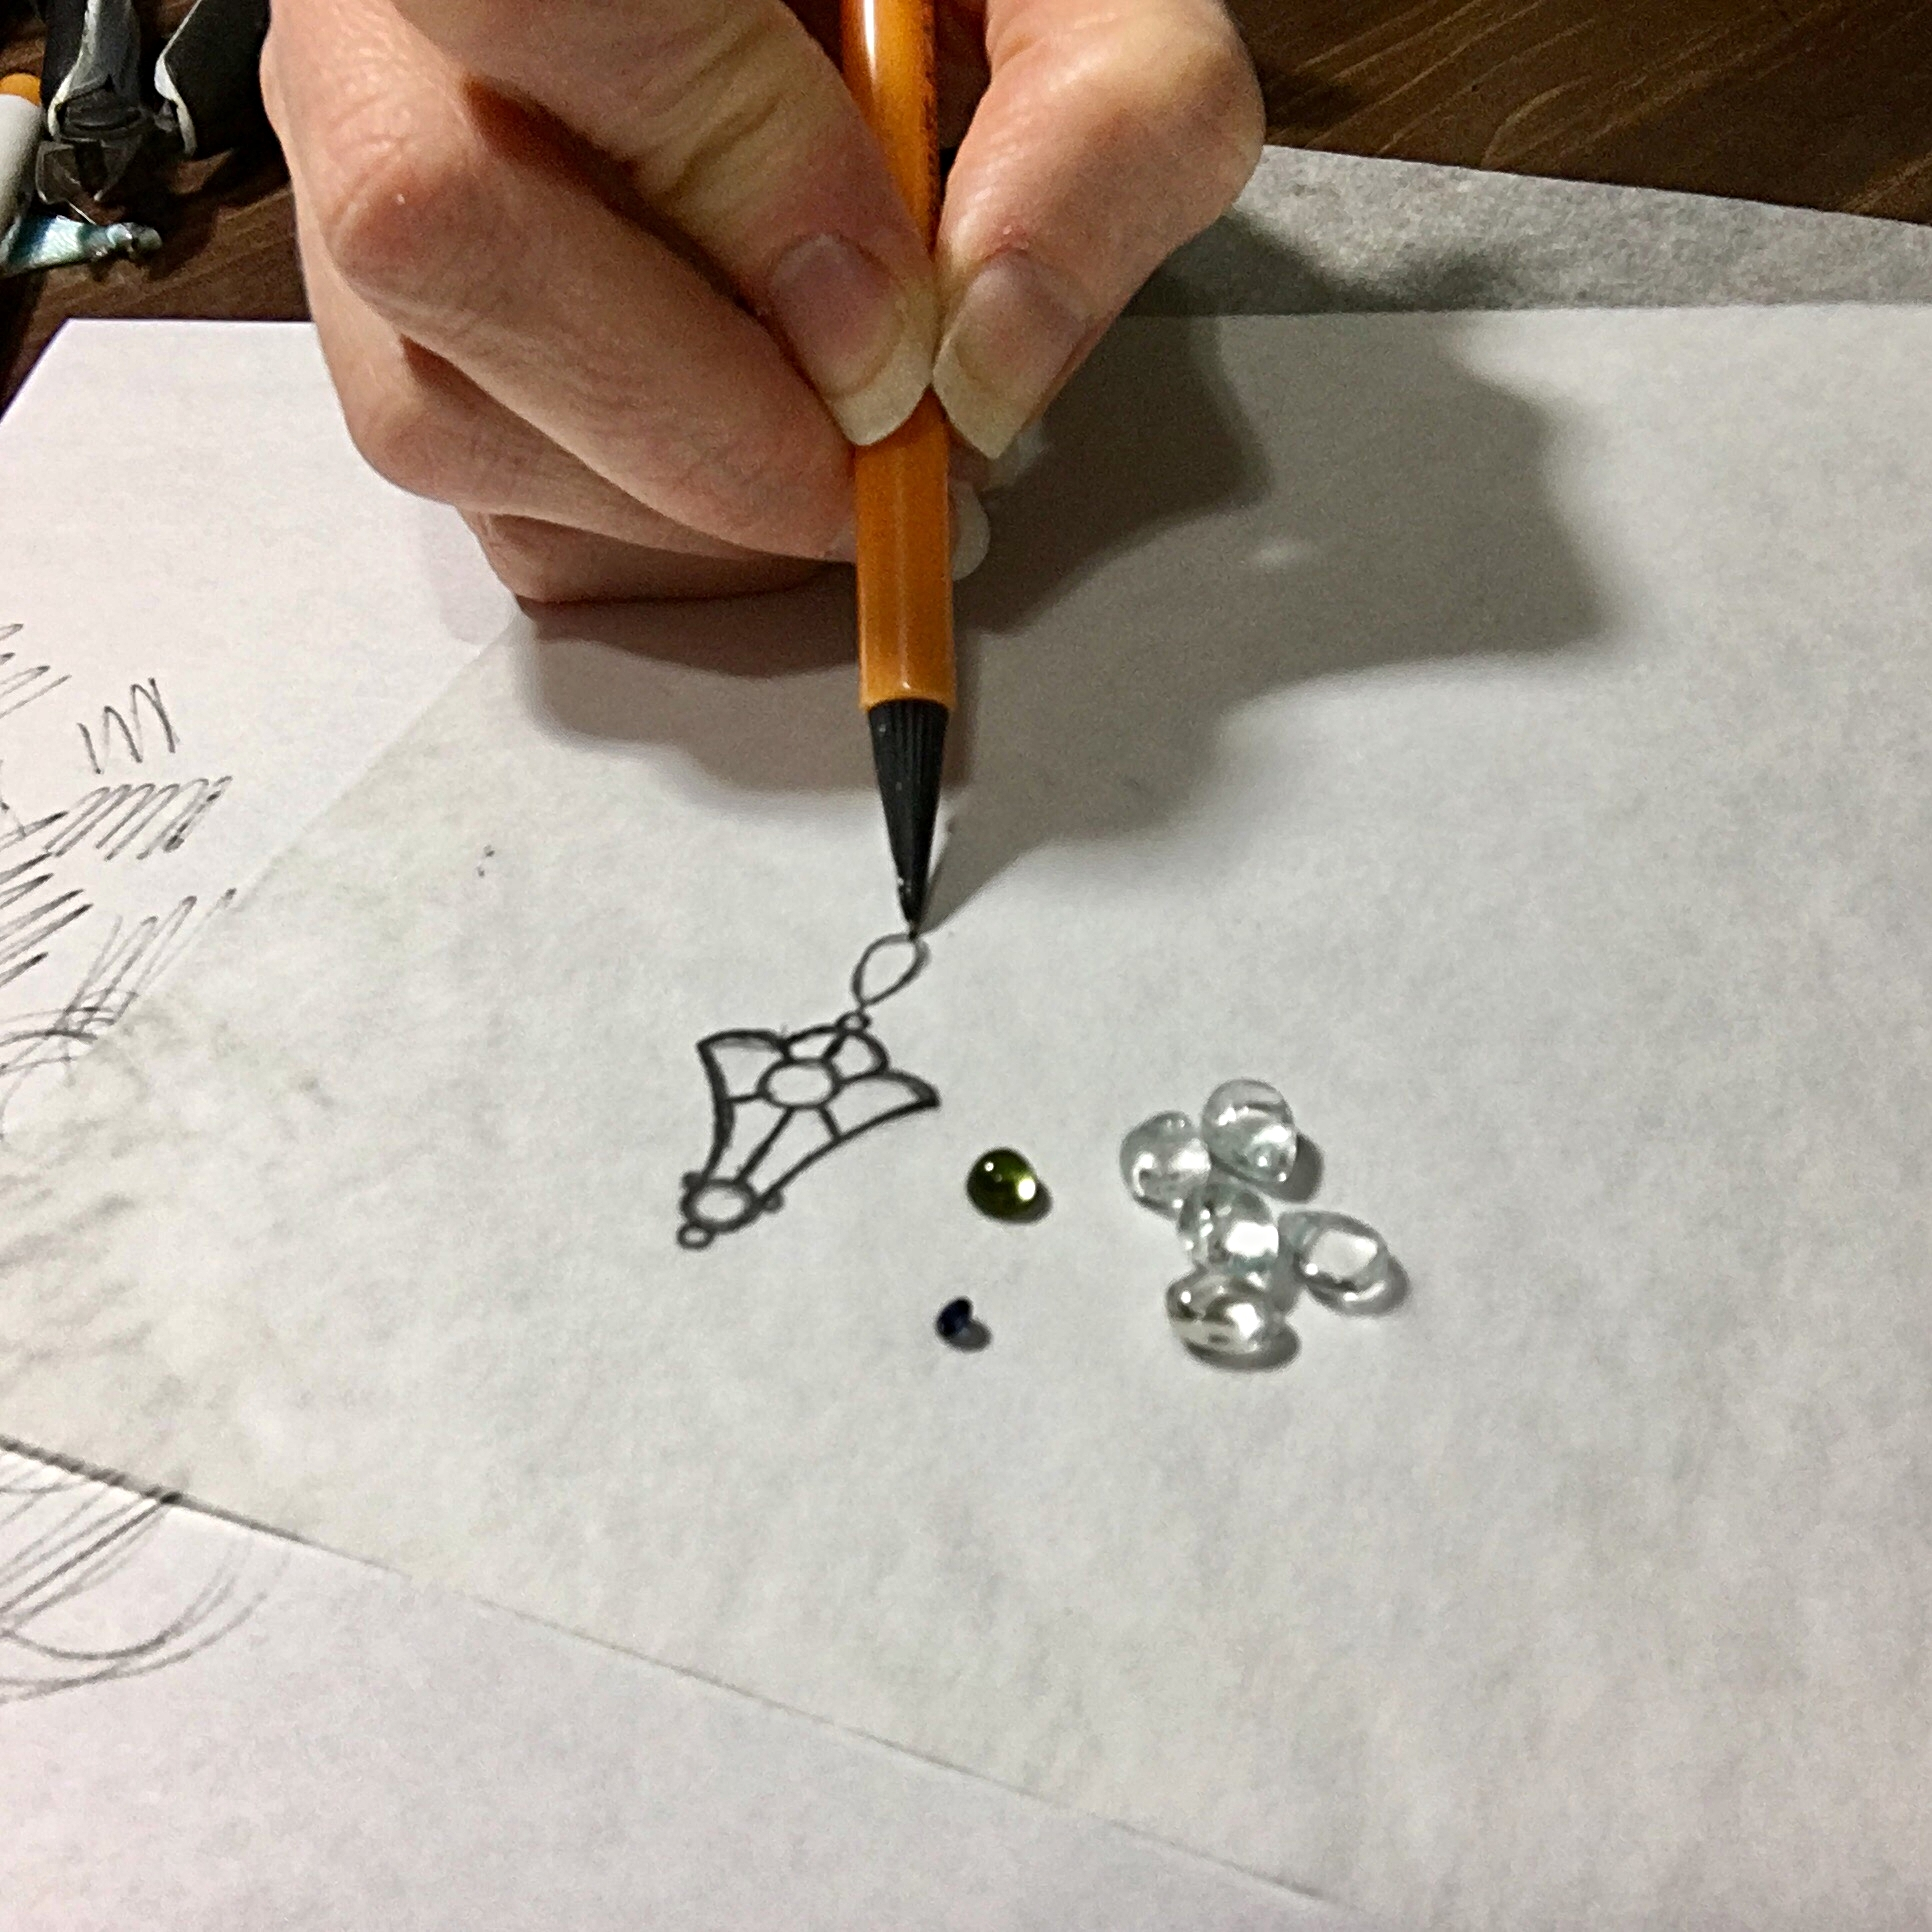 creating a working sketch